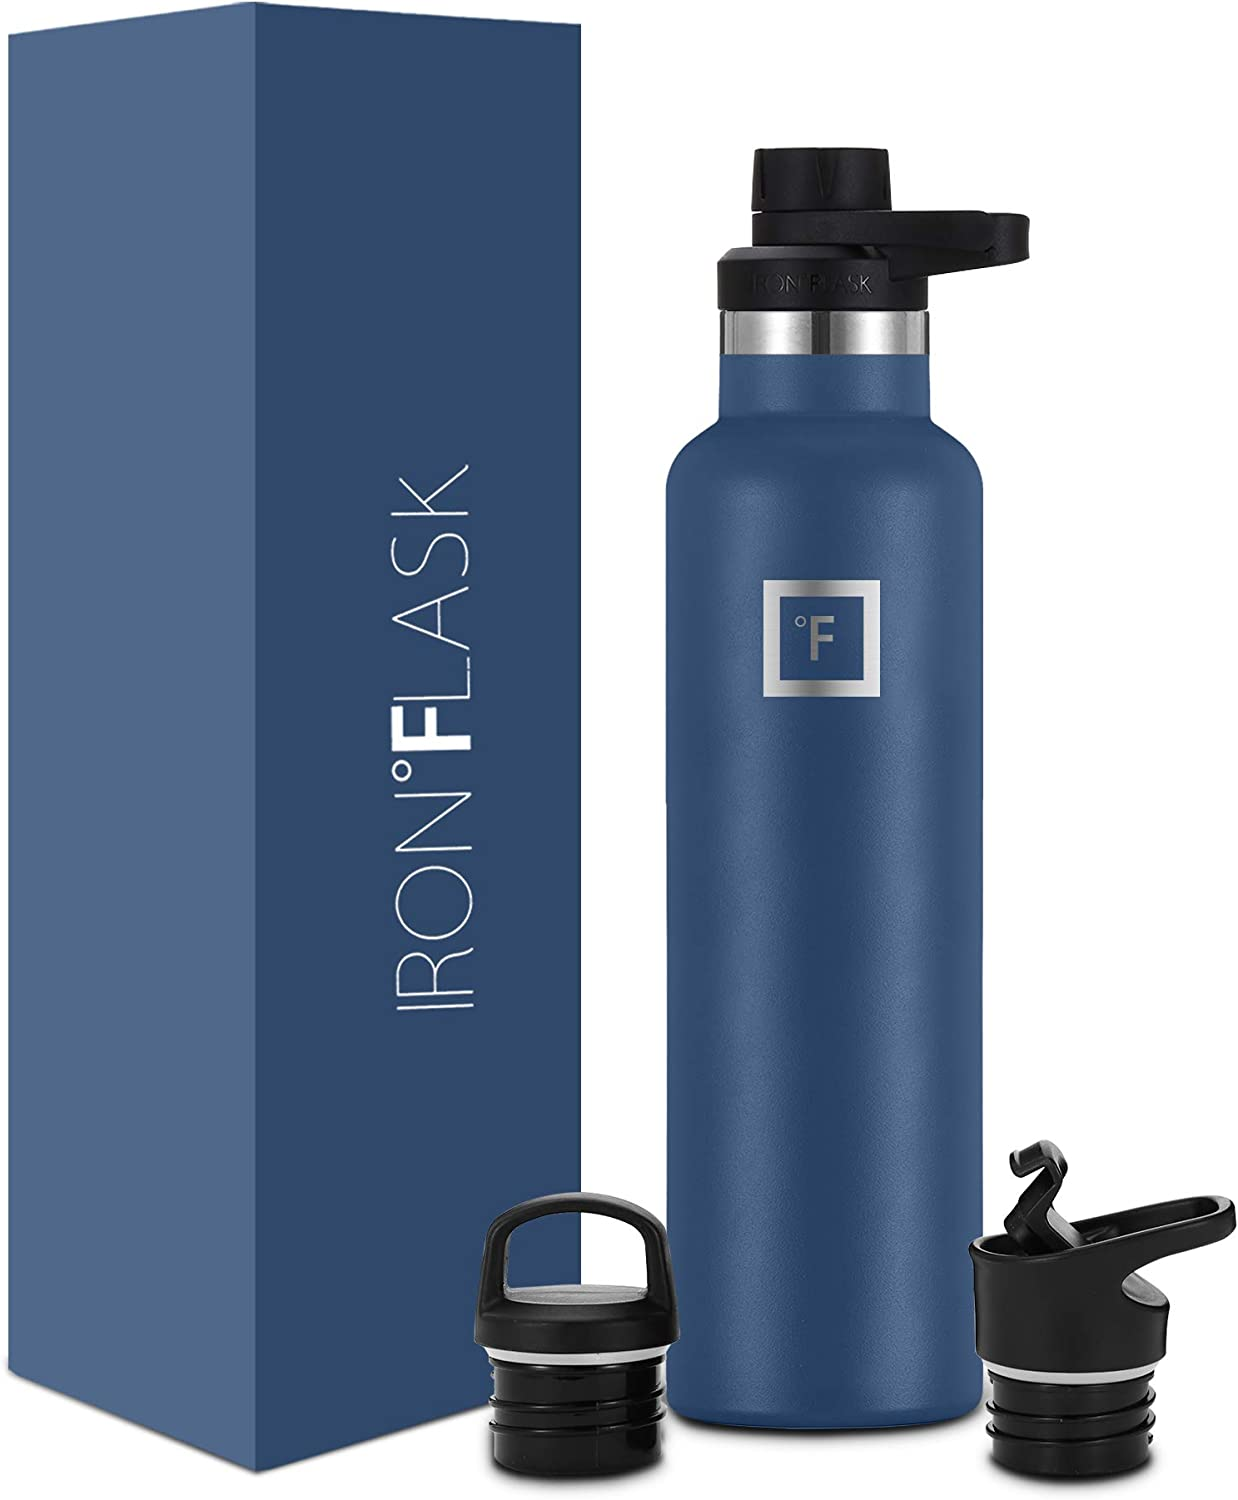 IRON °FLASK Sports Water Bottle - 12oz,16oz,20oz,24oz,32oz,64oz, 3 Lids (Spout Lid), Vacuum Insulated Stainless Steel, Hot Cold, Modern Double Walled, Simple Thermo Mug, Standard Hydro Metal Canteen